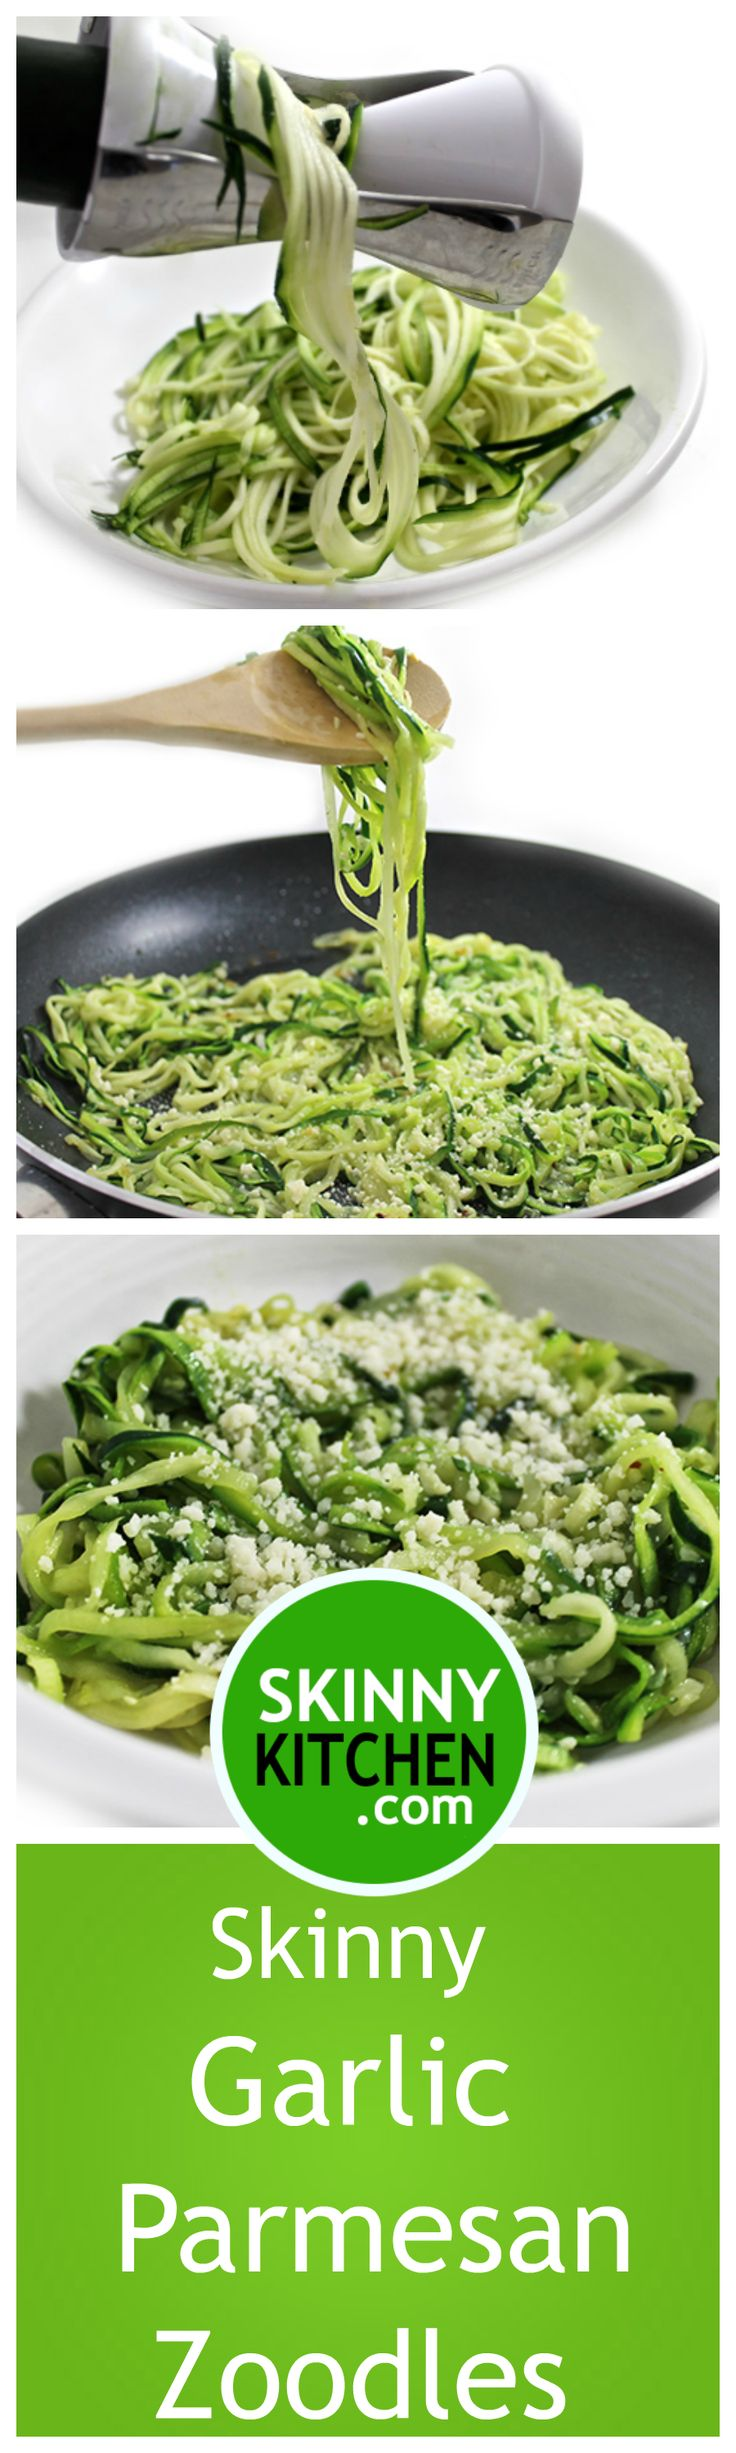 (NEW) Skinny Garlic Parmesan Zoodles